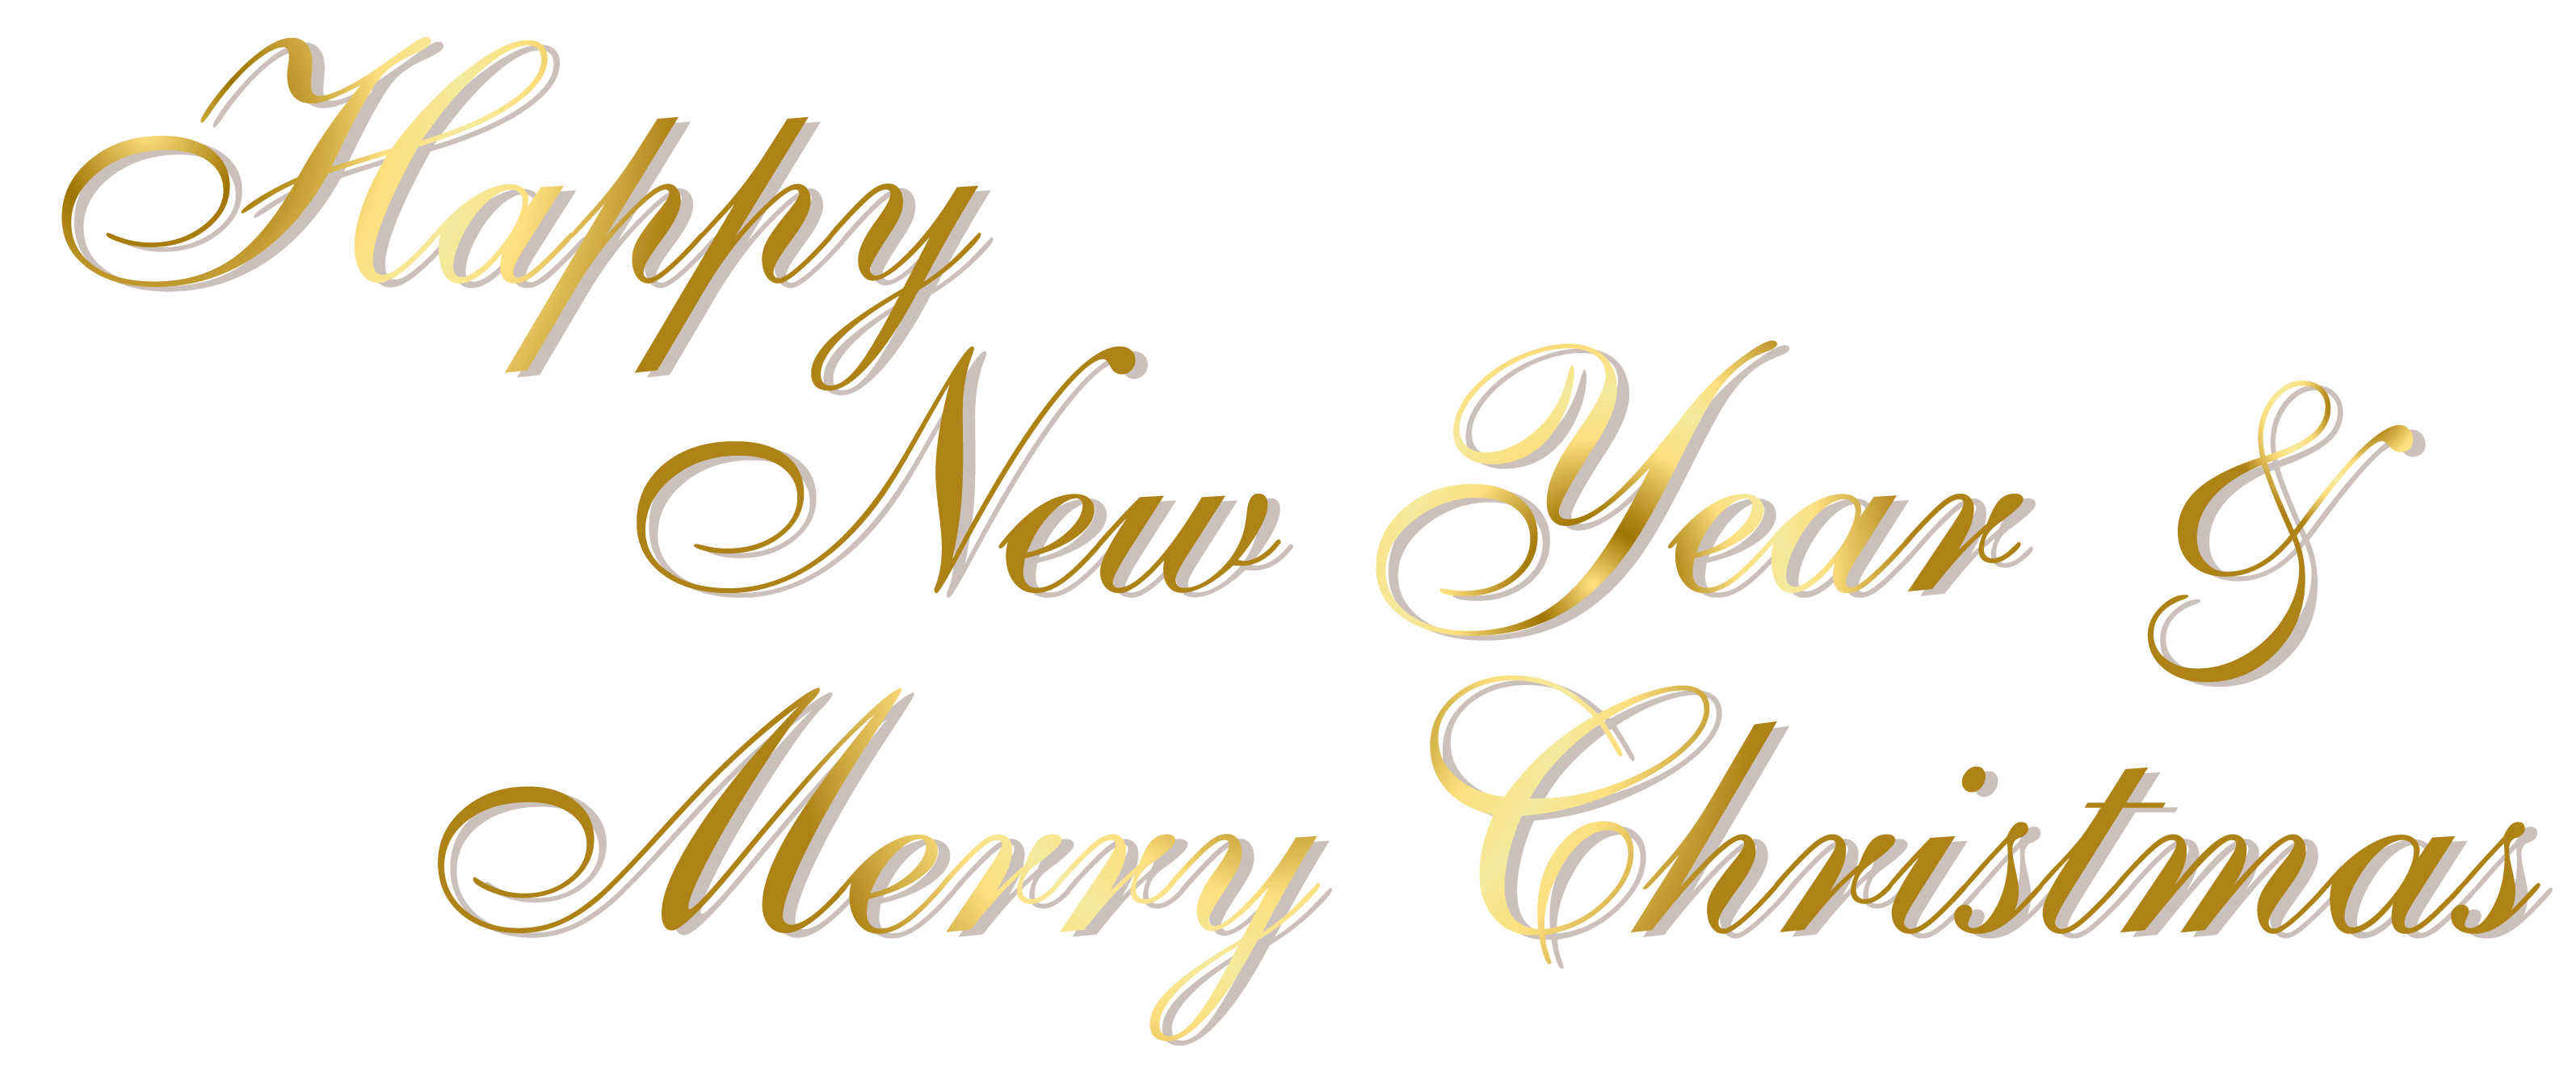 Happy new year text clipart black and white Gold Happy New Year and Merry Christmas PNG Text | Gallery ... black and white